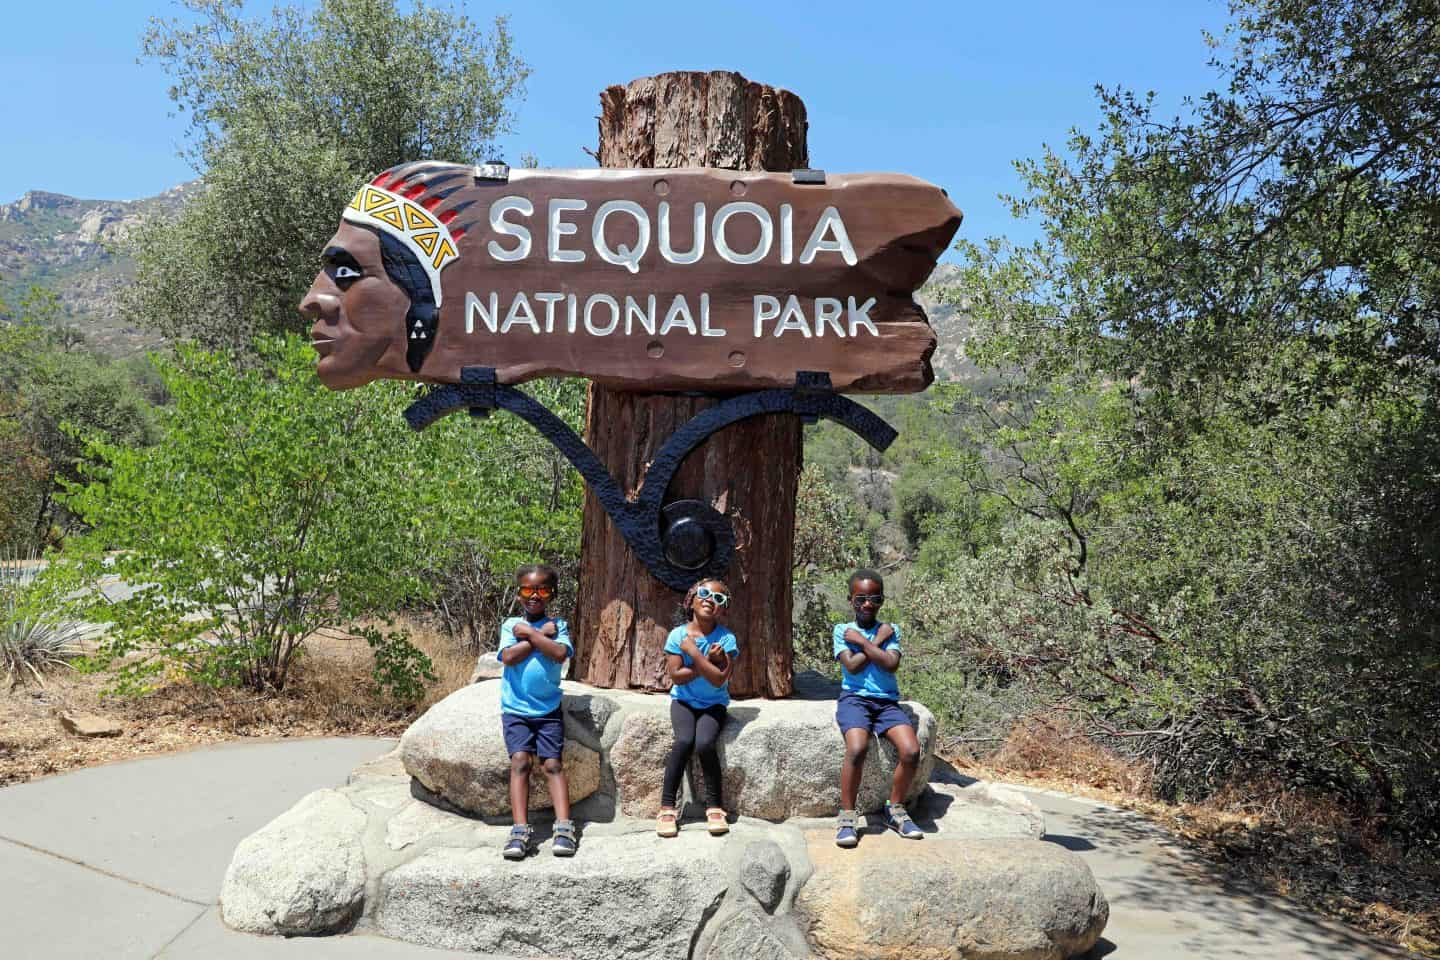 Family Trip To Sequoia National Park With Kids